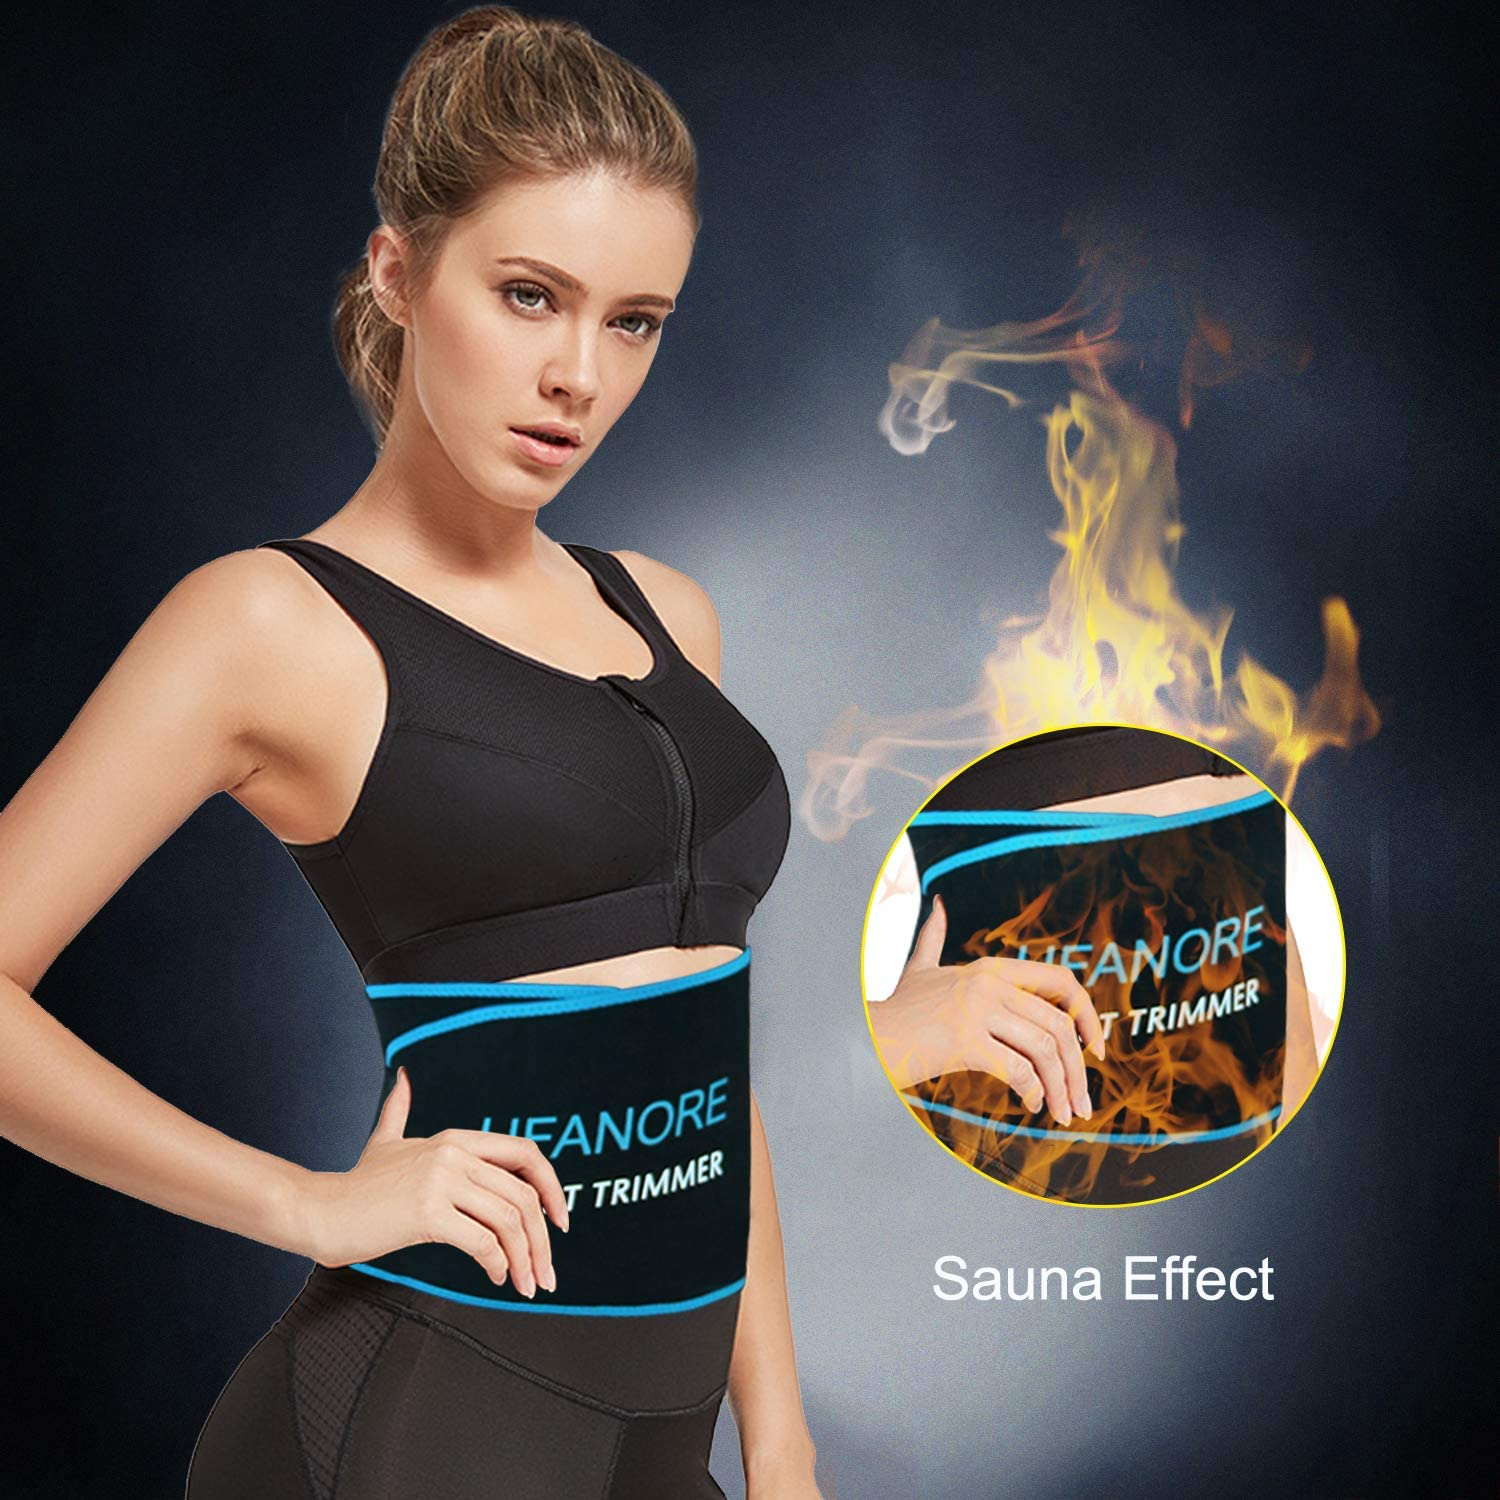 Ufanore Waist Trainer for Men /& Women Breathable Abdominal Waist Trimmer Adjustable Waist Cincher Trainer for Slimming Body/ Stomach and Low Back Support